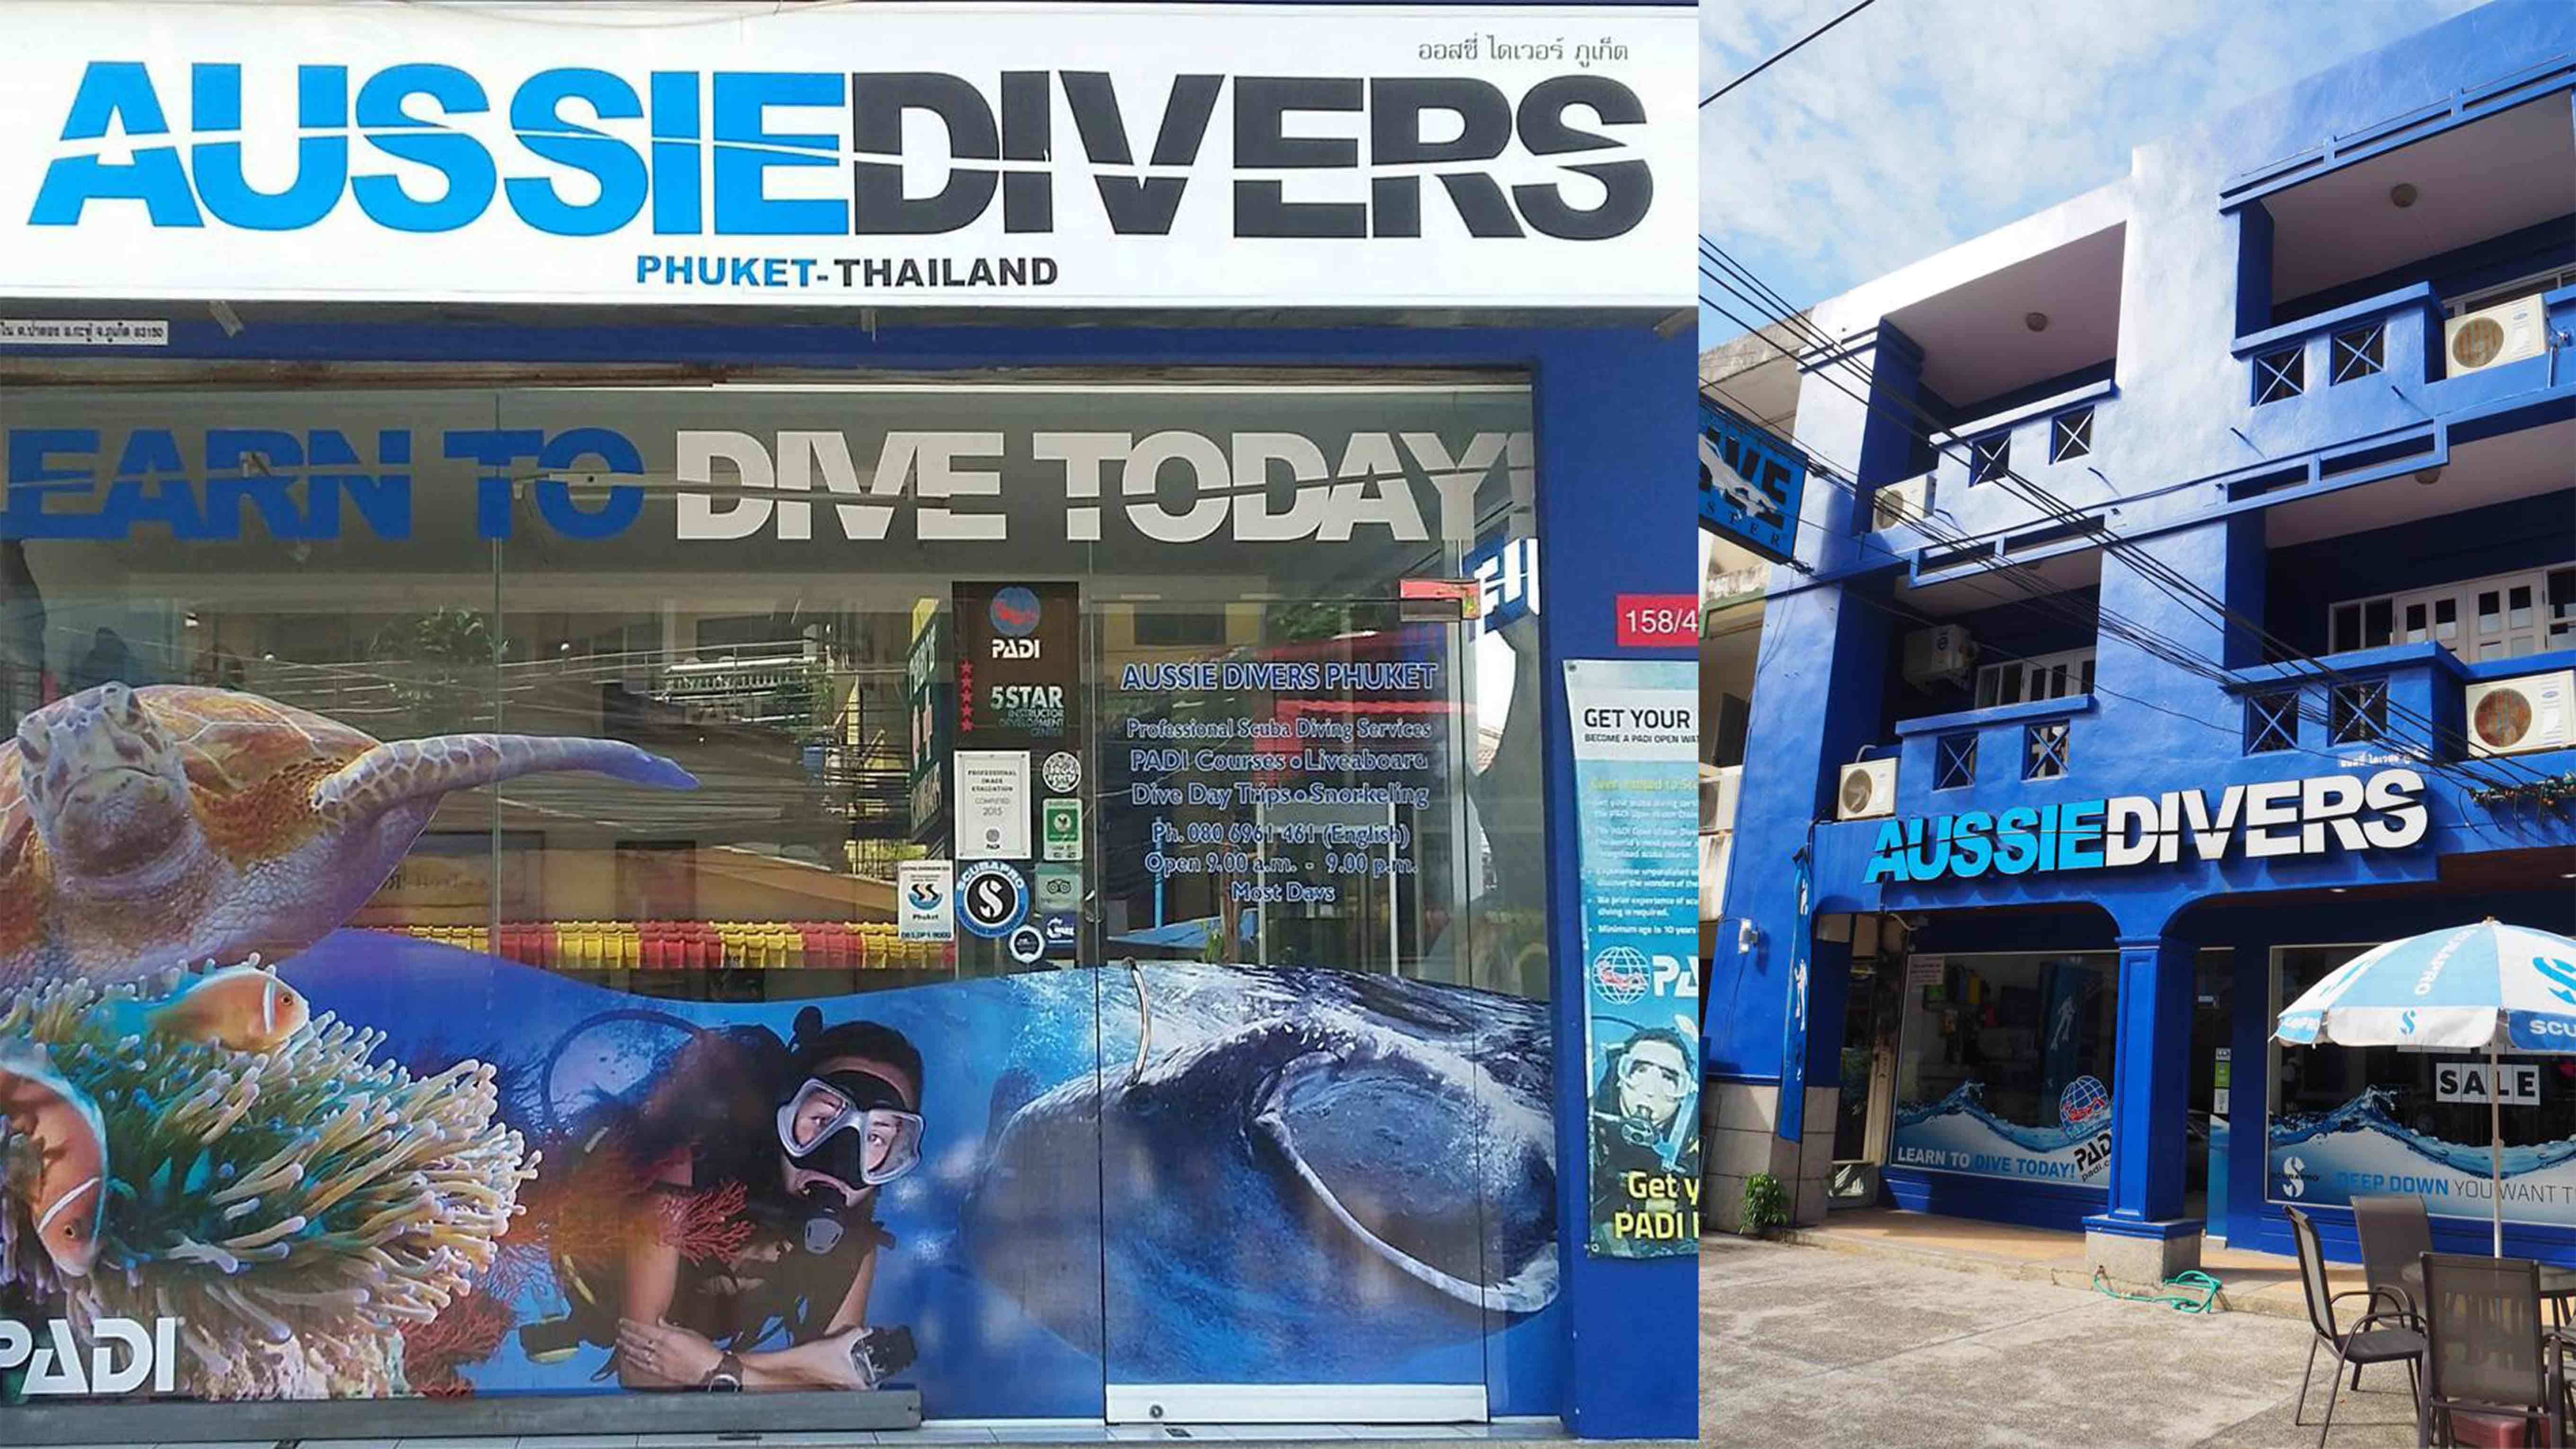 Contact Aussie Divers